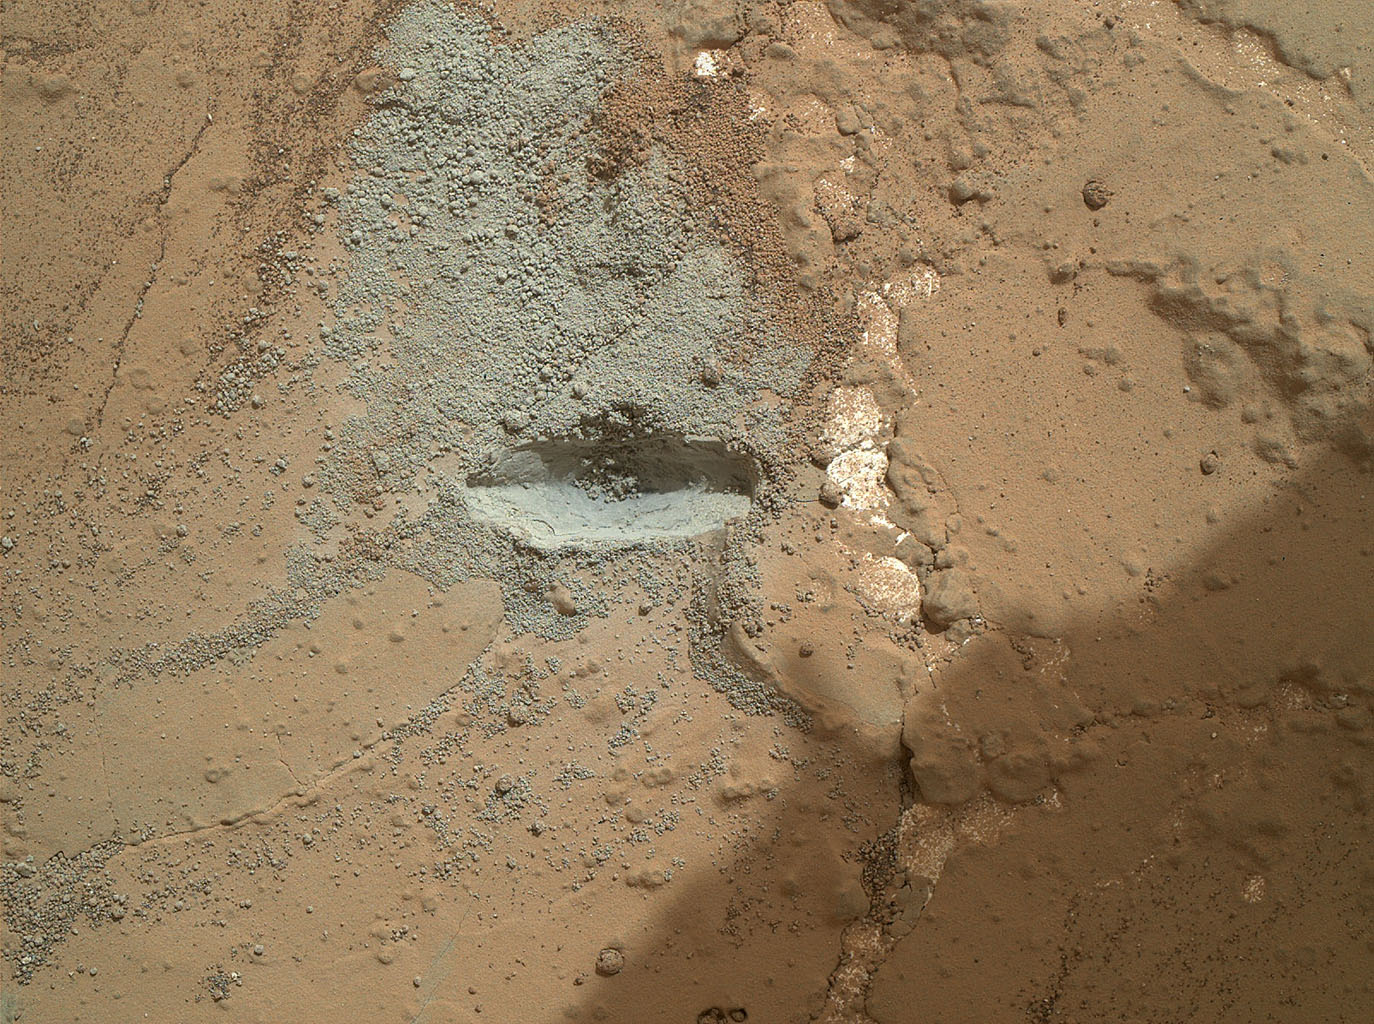 The bit in the rotary-percussion drill of NASA's Mars rover Curiosity left its mark in a target patch of rock called 'John Klein' during a test on Feb. 2, 2013, in preparation for the first drilling of a rock by the rover.